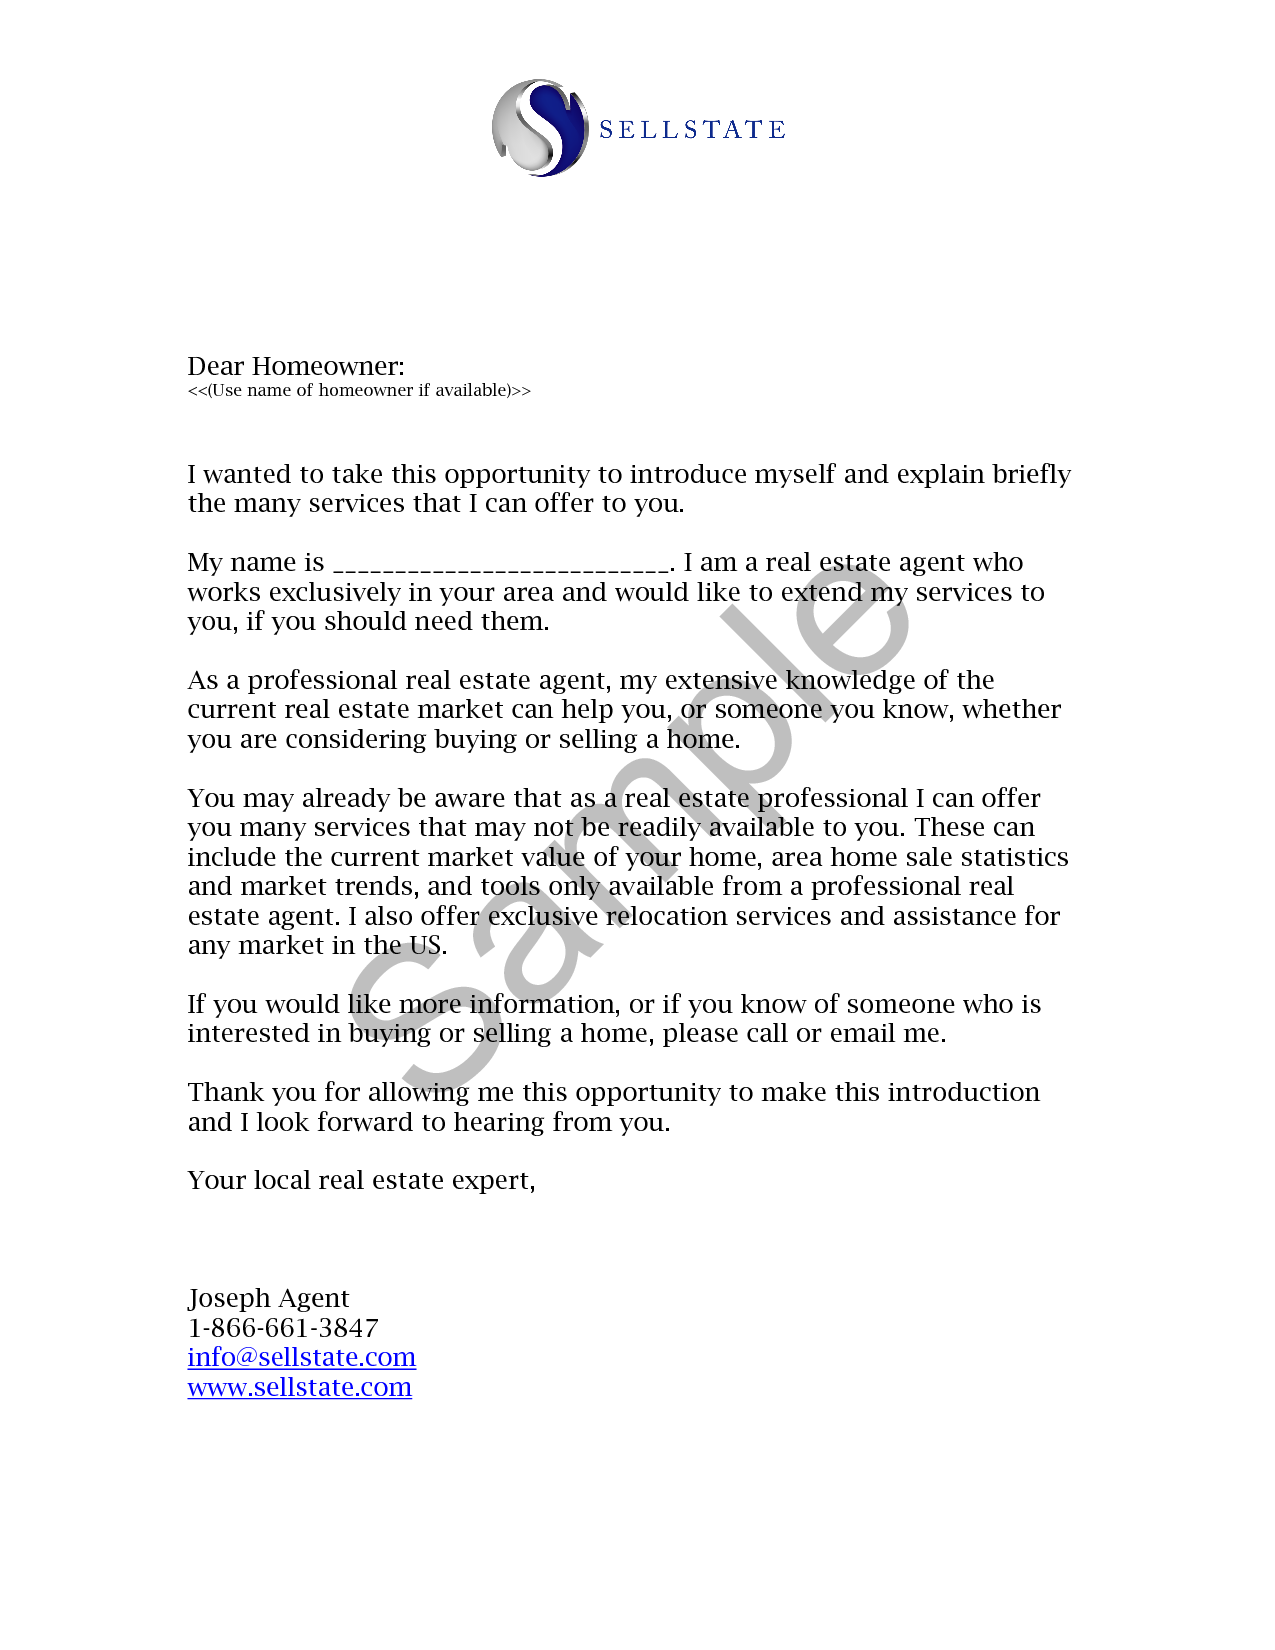 Real Estate Letters of Introduction Introduction Letter Real – Real Estate Referral Letter